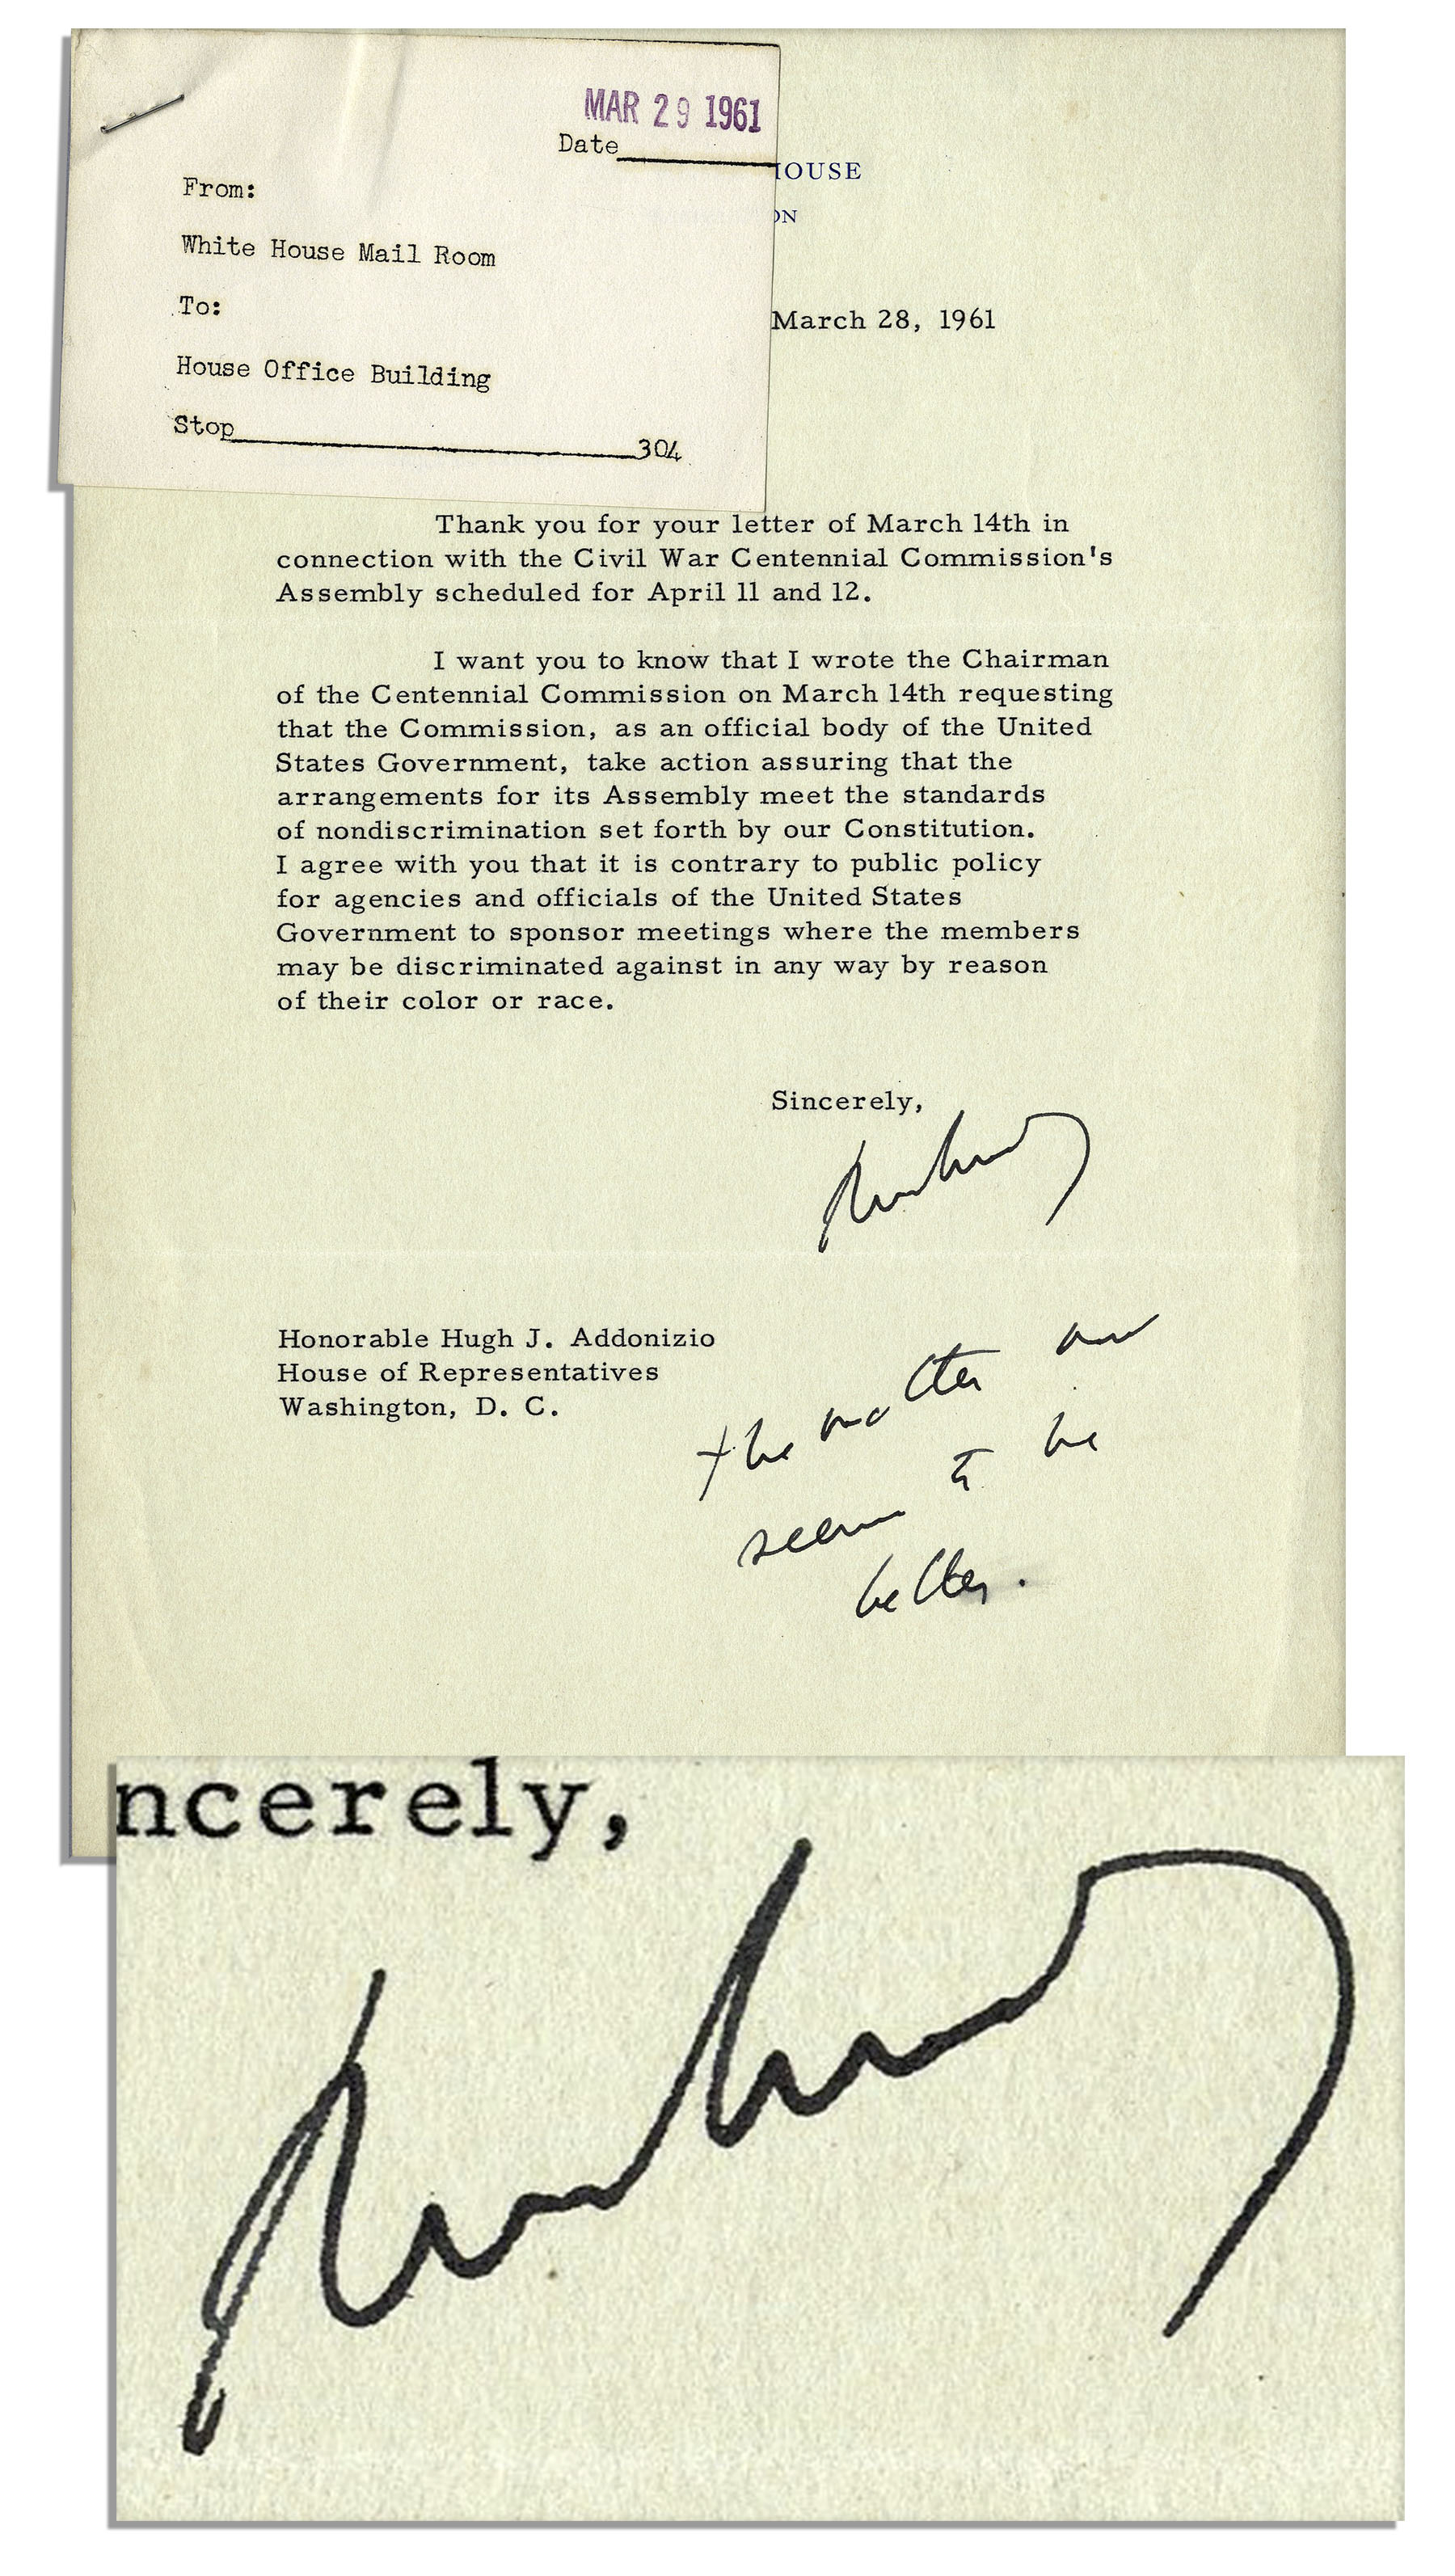 John F Kennedy Autograph John F. Kennedy Letter Signed as President, Regarding Civil Rights -- ''...the standards of nondiscrimination set forth by our Constitution...'' -- With Autograph Postscript by JFK & PSA COA